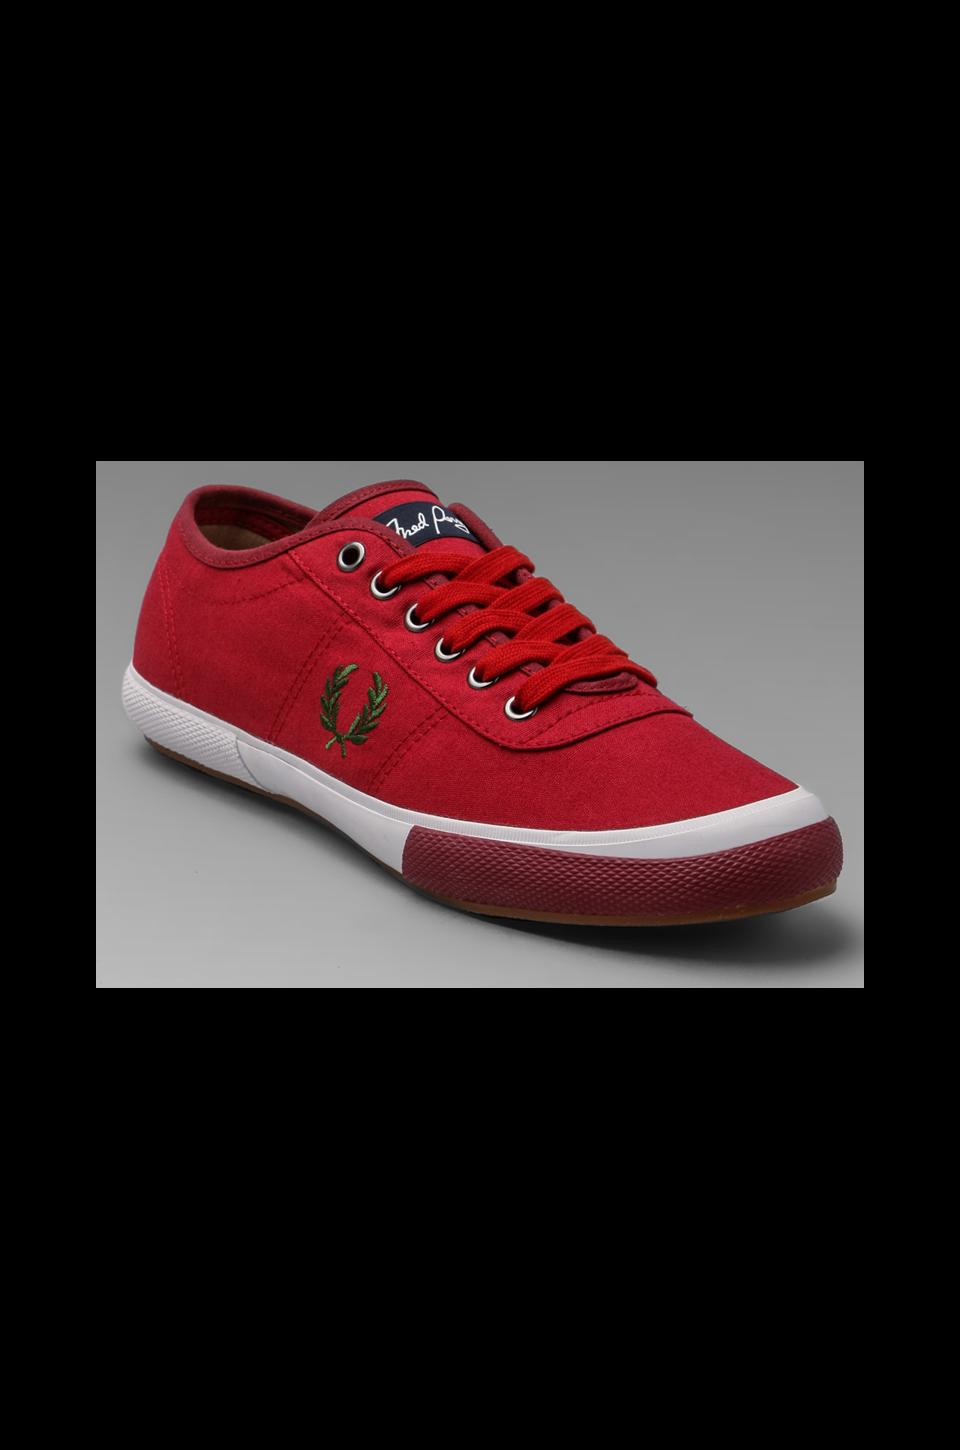 Fred Perry Woodford Canvas in Blood/Olive/Maroon